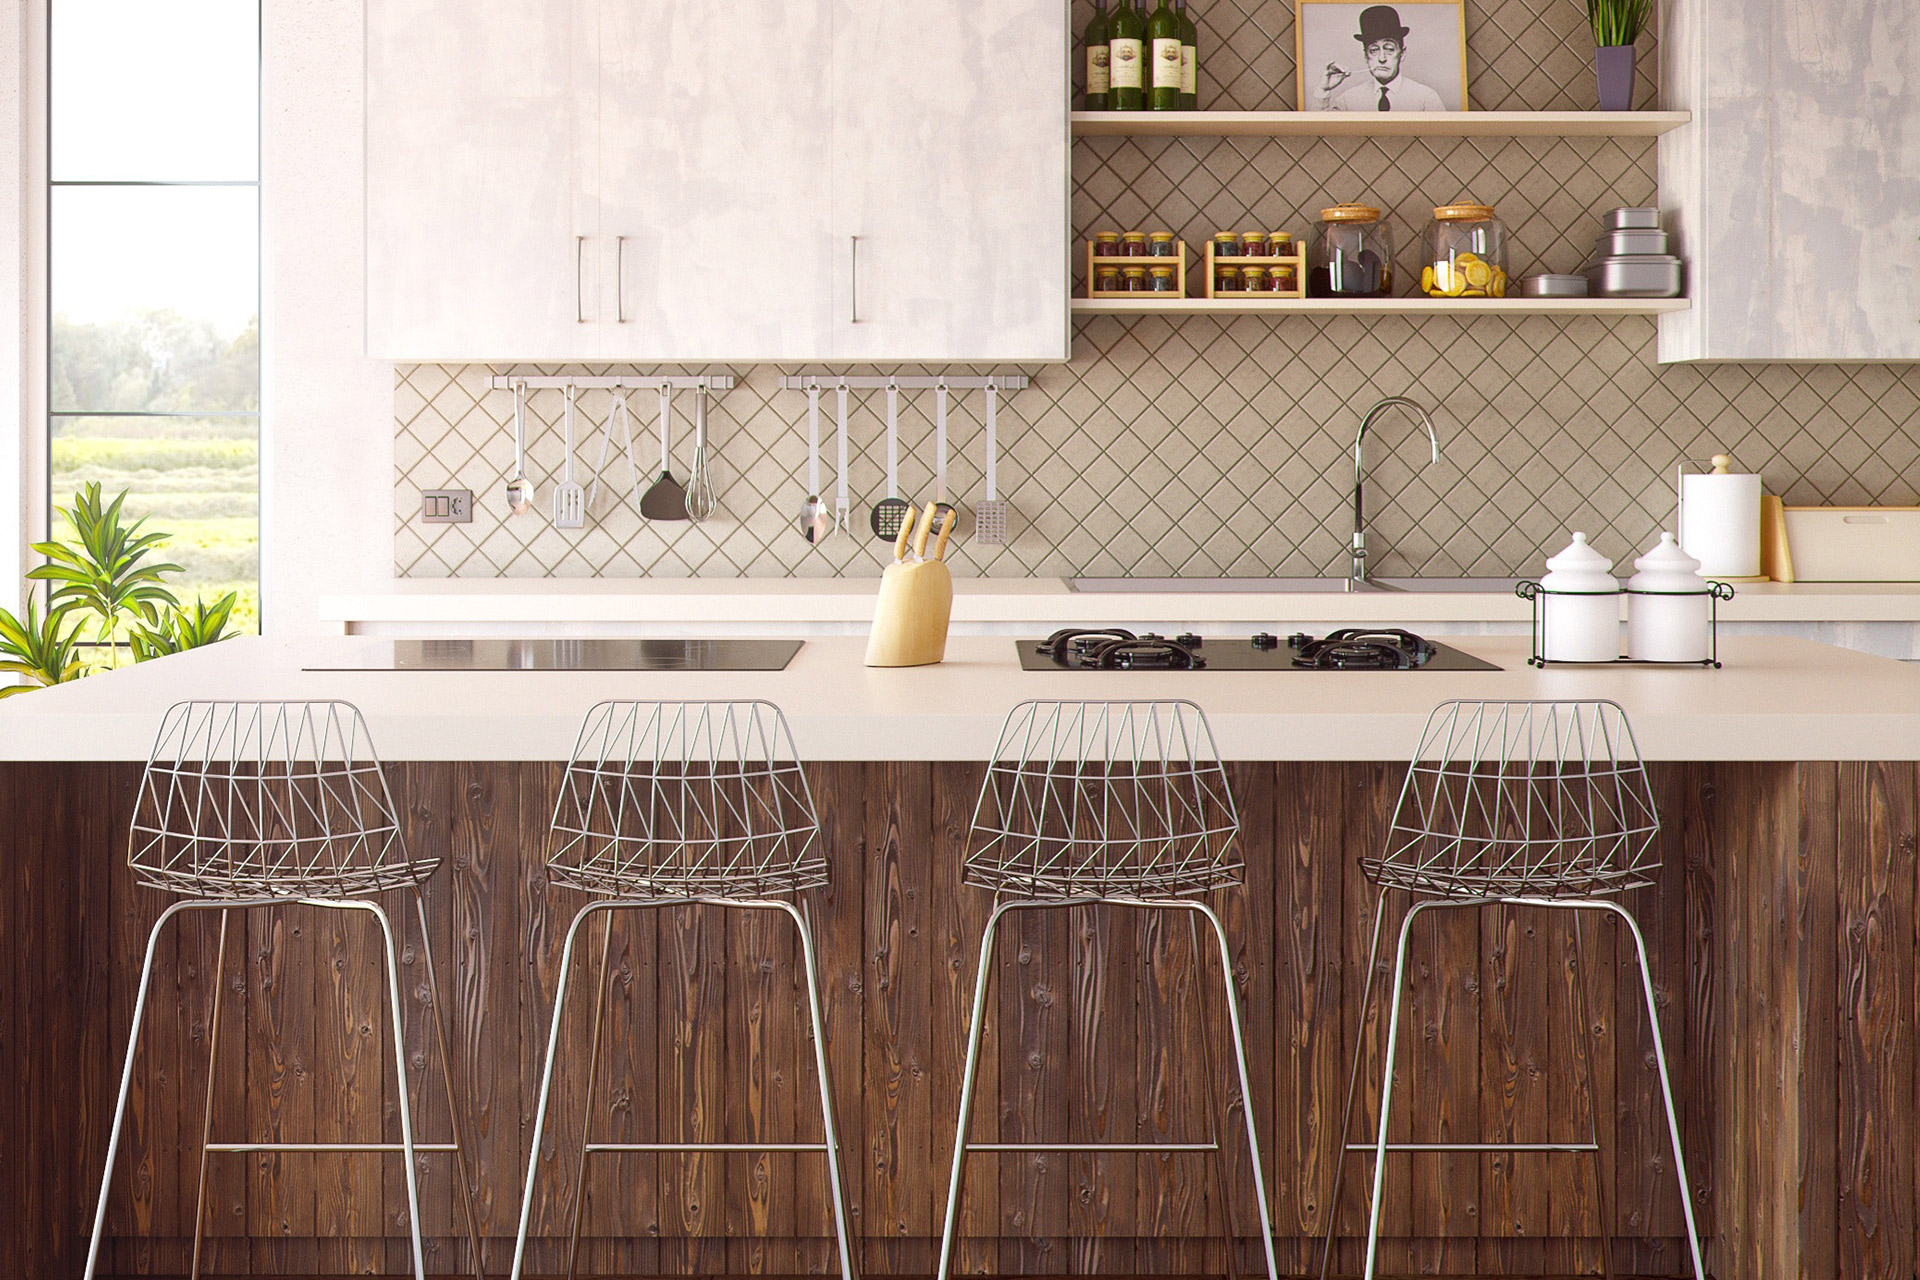 View of a modern looking kitchen with 4 bar chairs